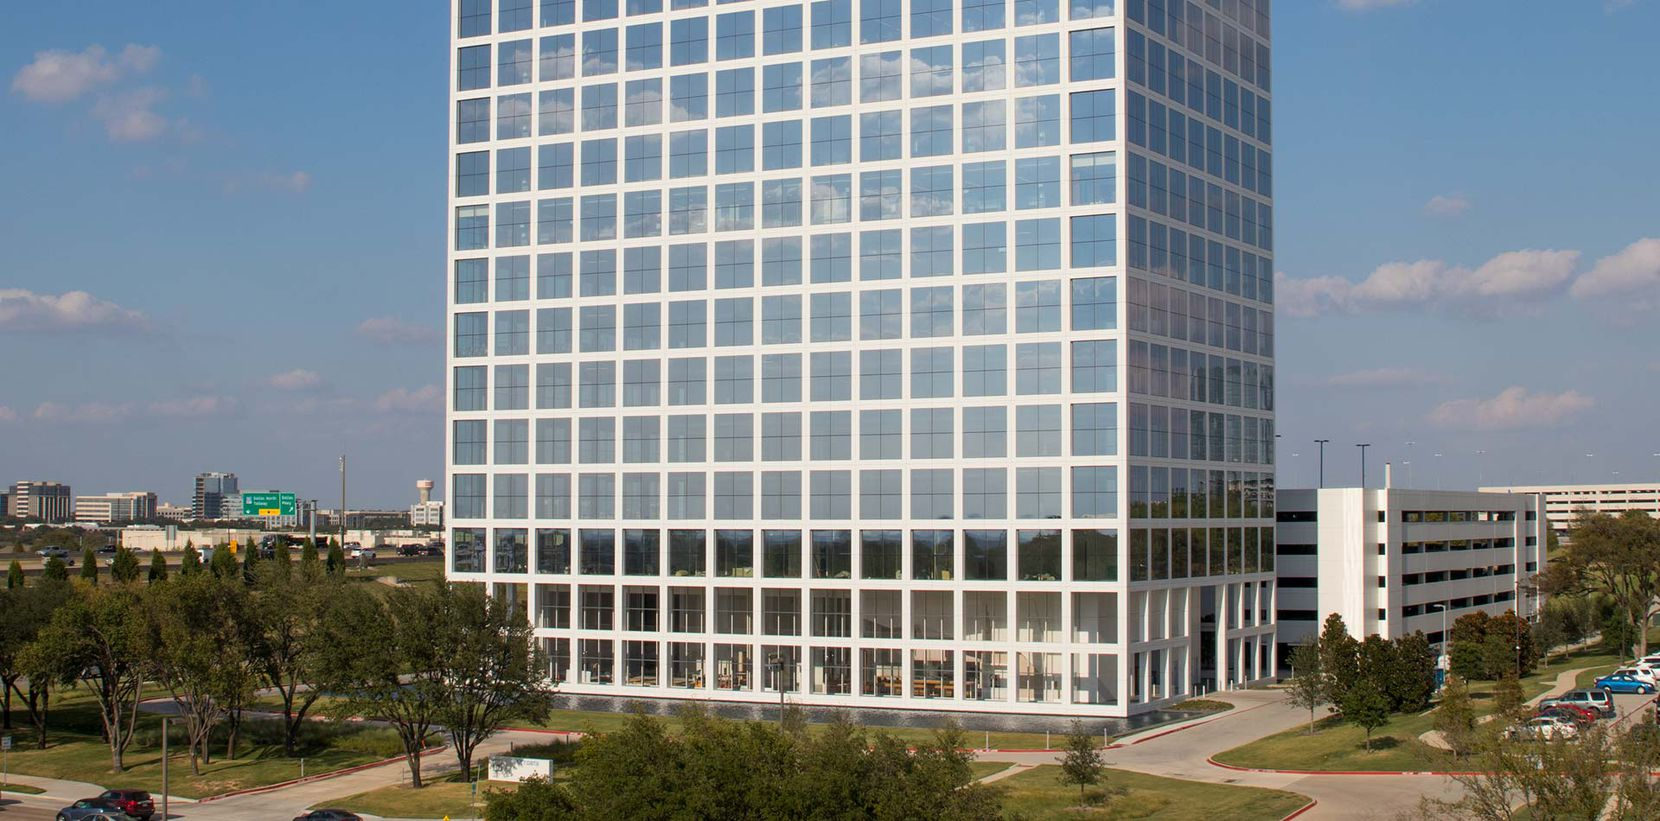 The One Legacy West tower is across the street from Toyota's U.S. headquarters in Plano.